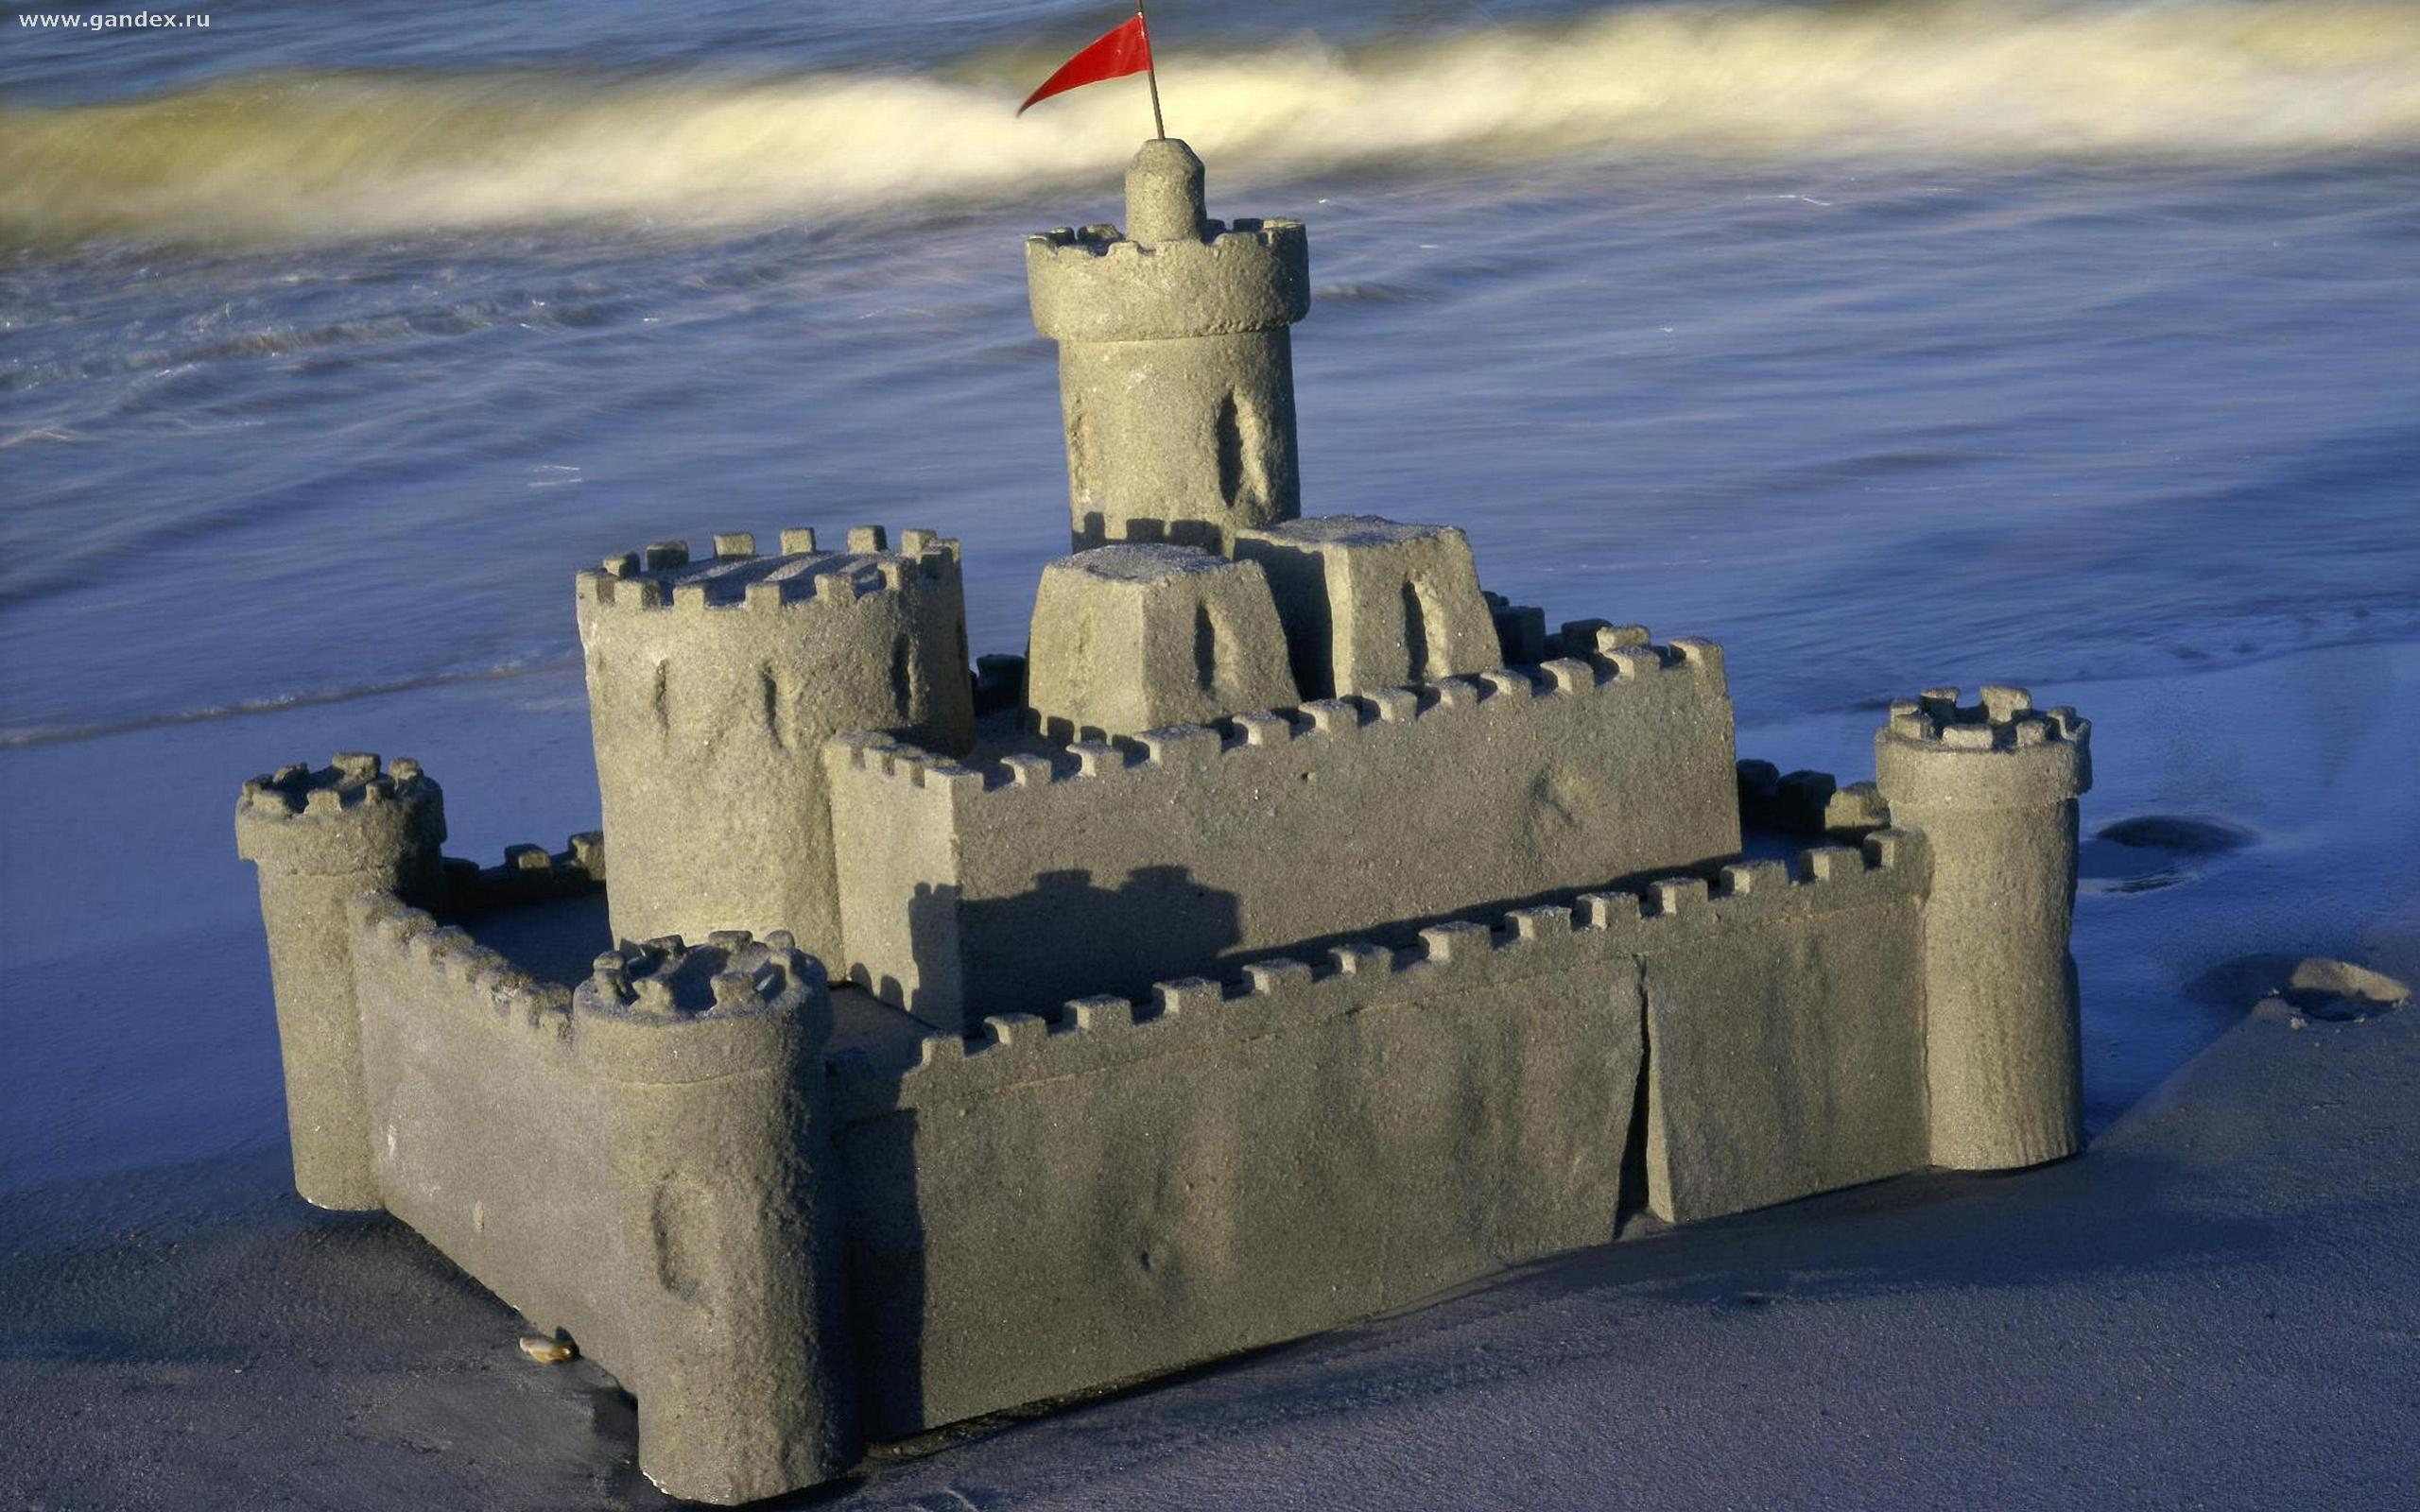 A day at the beach, widescreen wallpaper, sand castle